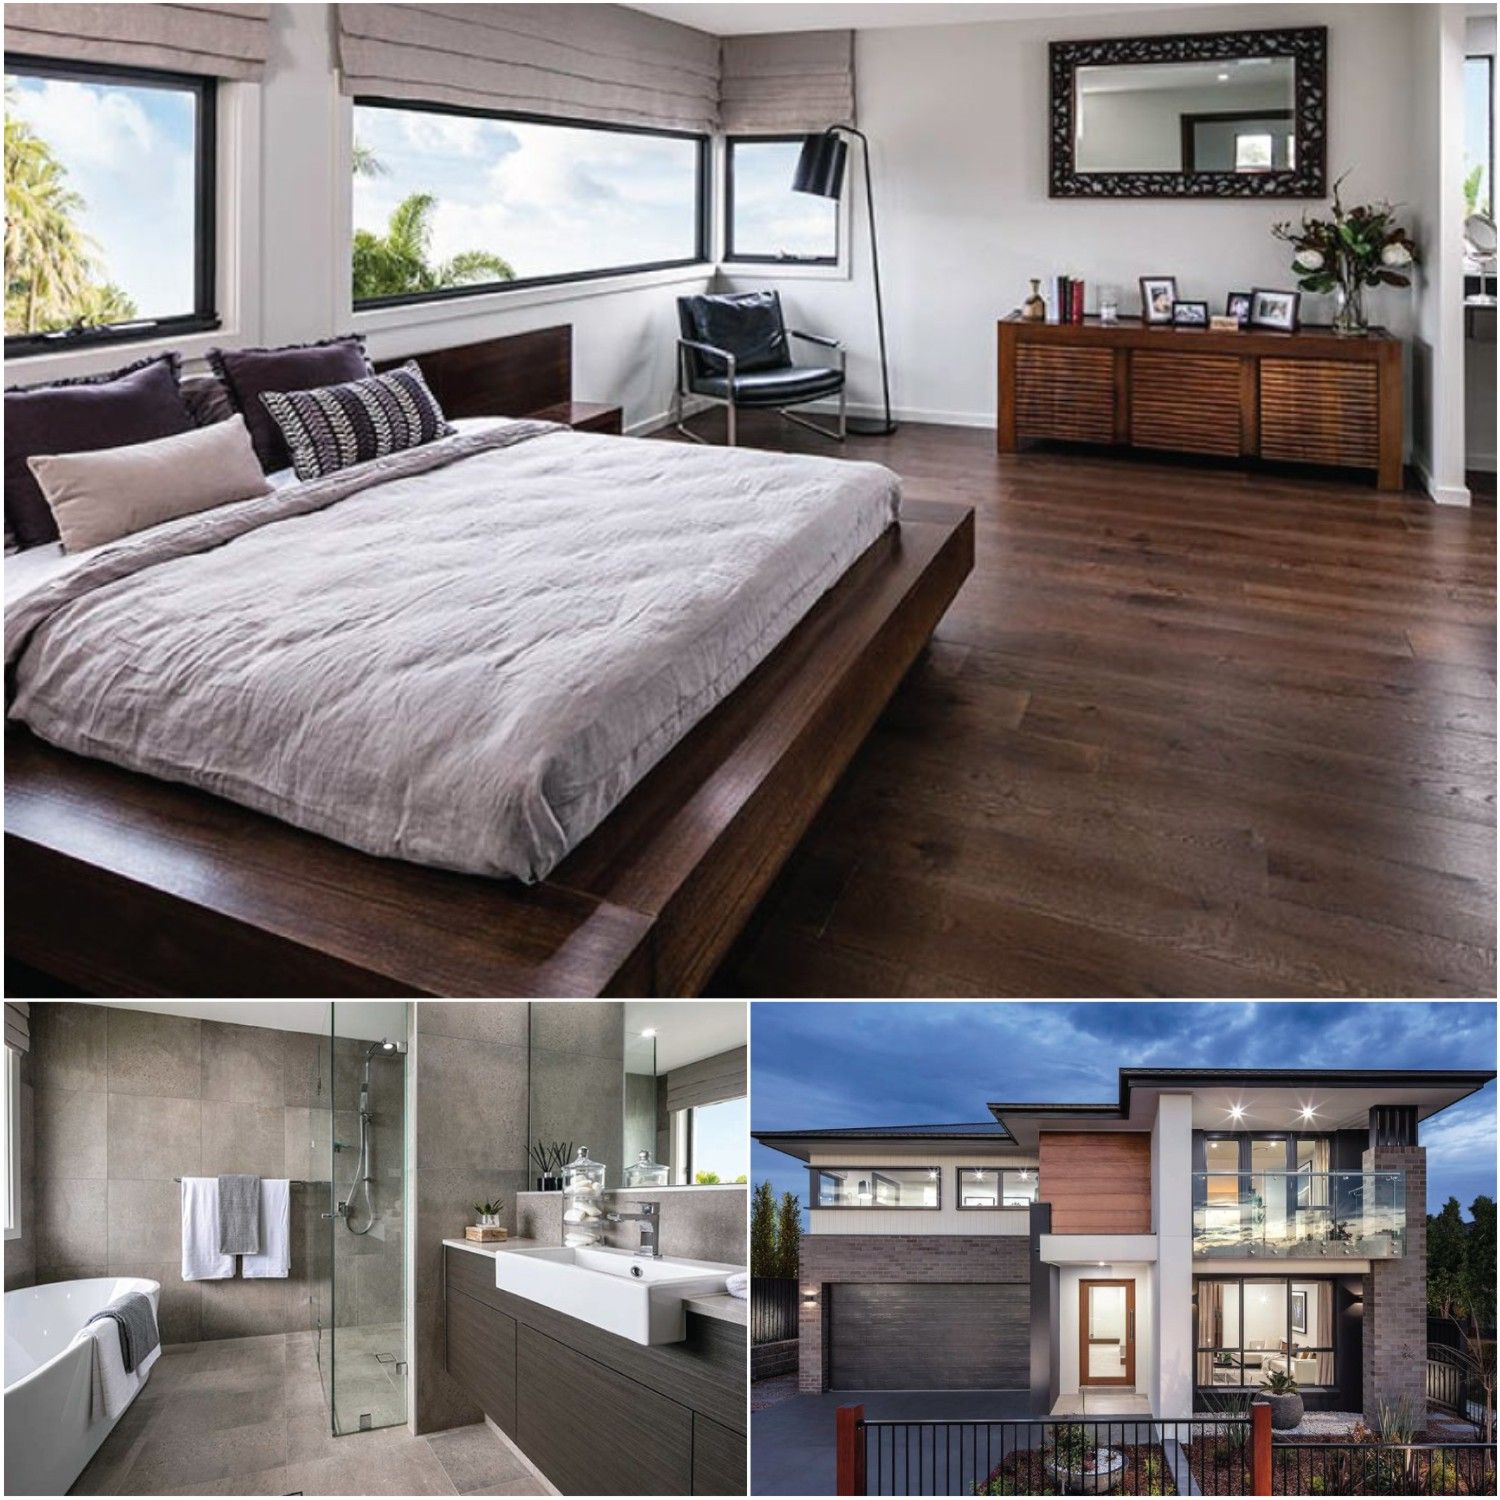 5 star master bedrooms  Build this housedesign with a master suite that has all the luxury